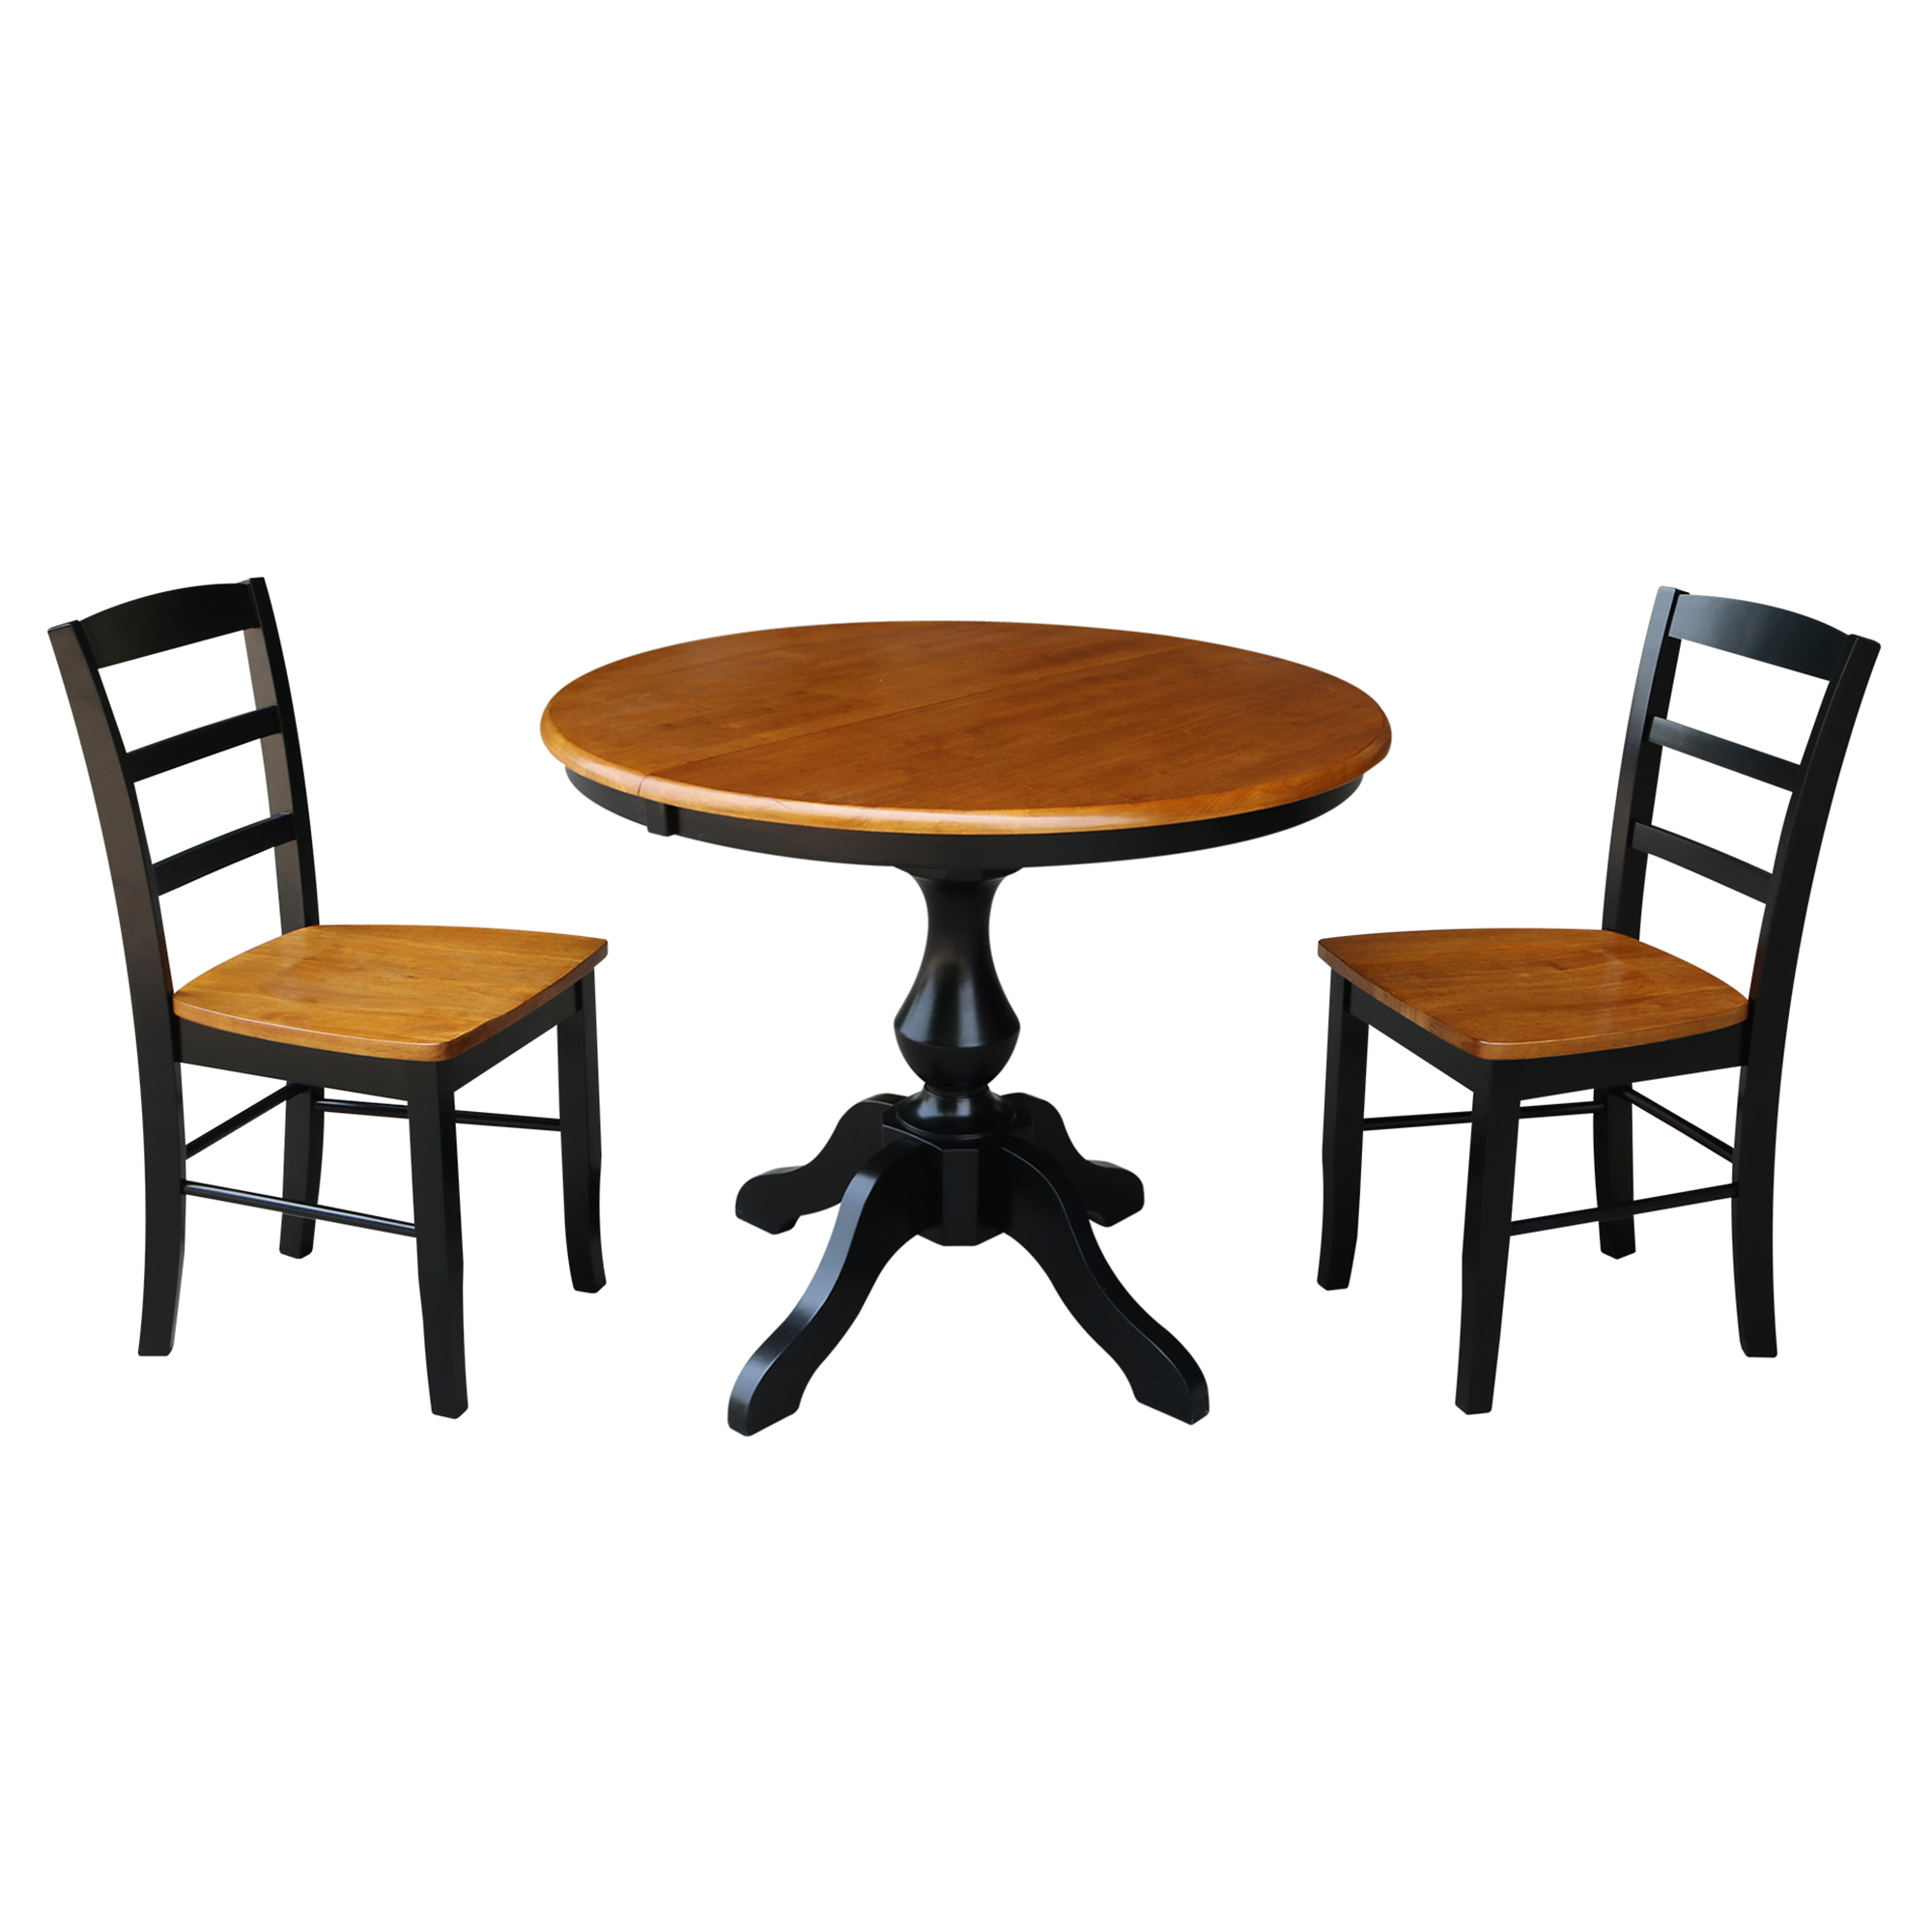 """36"""" Round Dining Table with 12"""" Leaf and 2 Madrid Chairs - Black/Cherry - 3 Piece Set"""